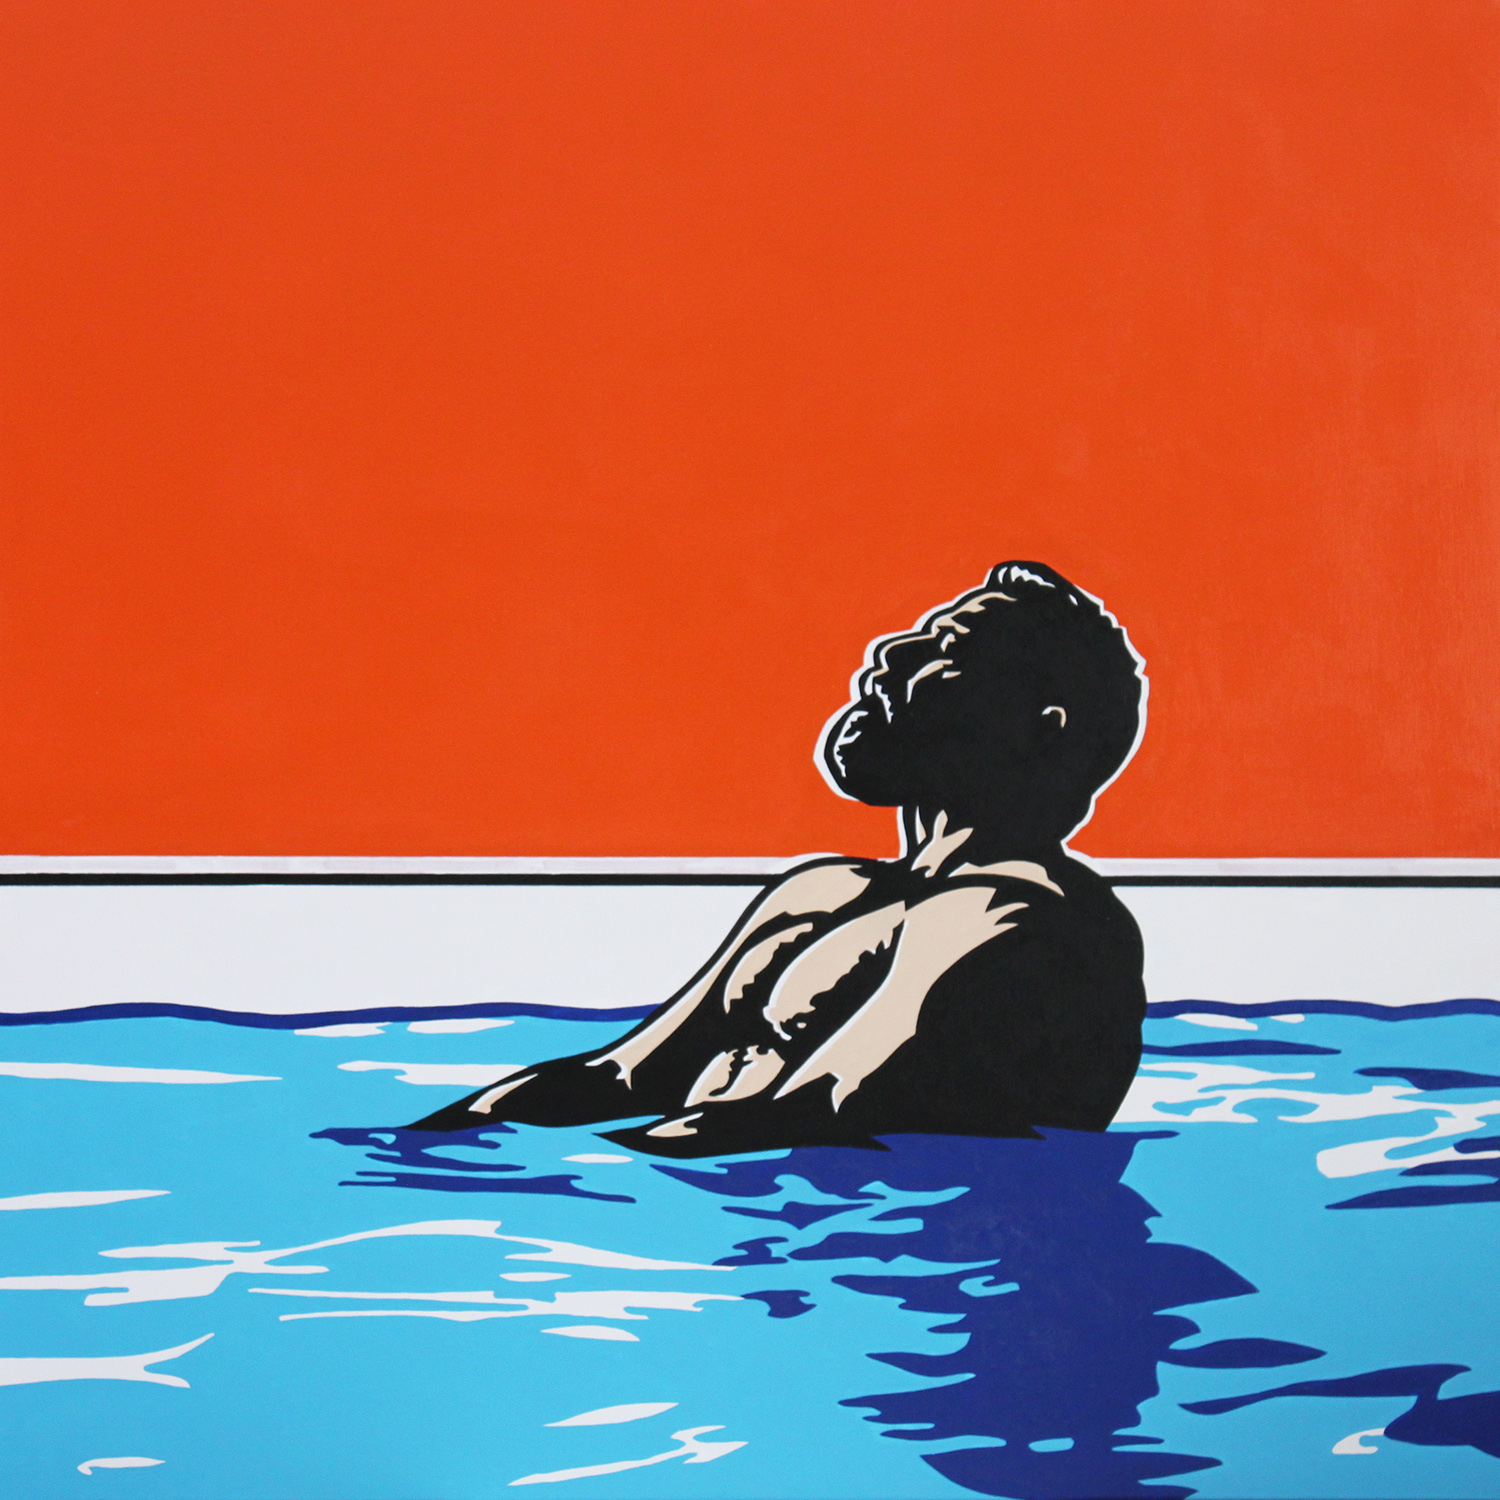 Afternoon by the Pool ll, 2017 Enamel on canvas 40x40""